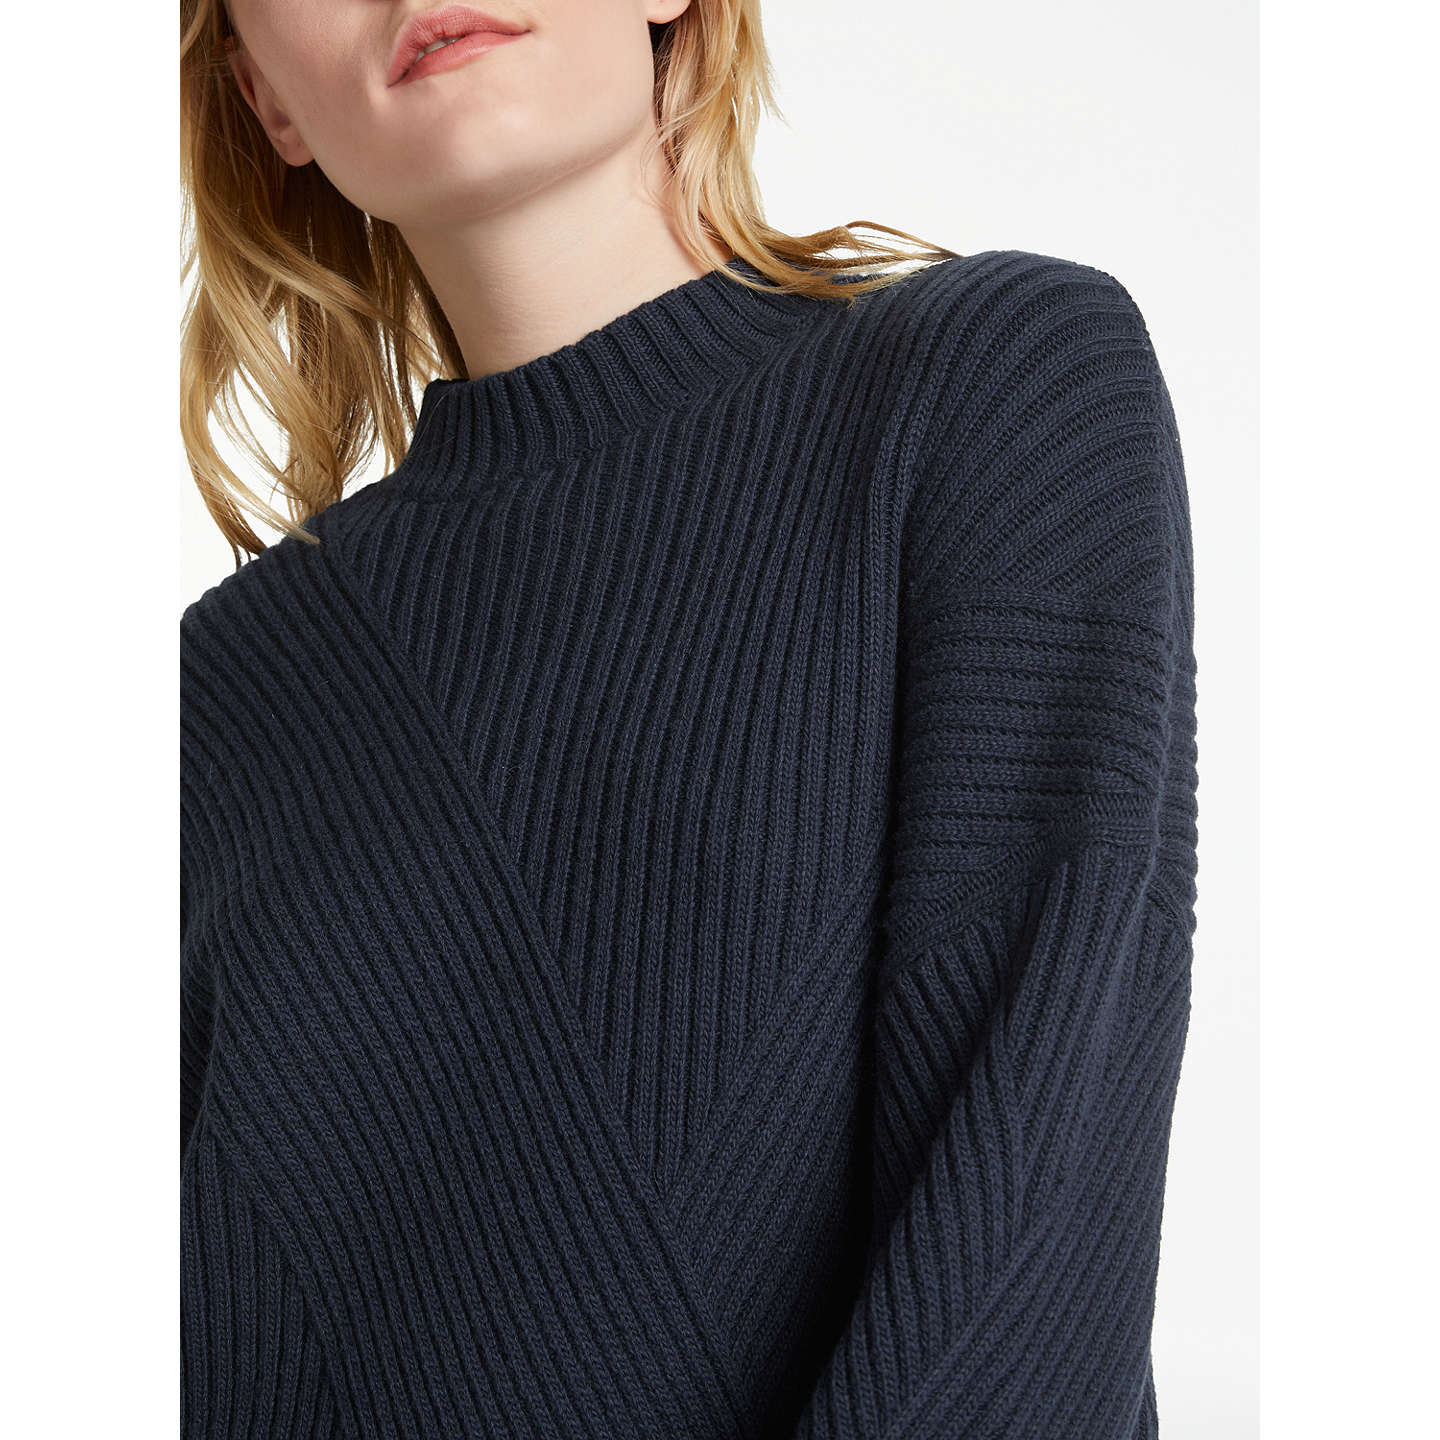 BuyAND/OR Kate Cutabout Rib Jumper, Deep Blue, 8 Online at johnlewis.com